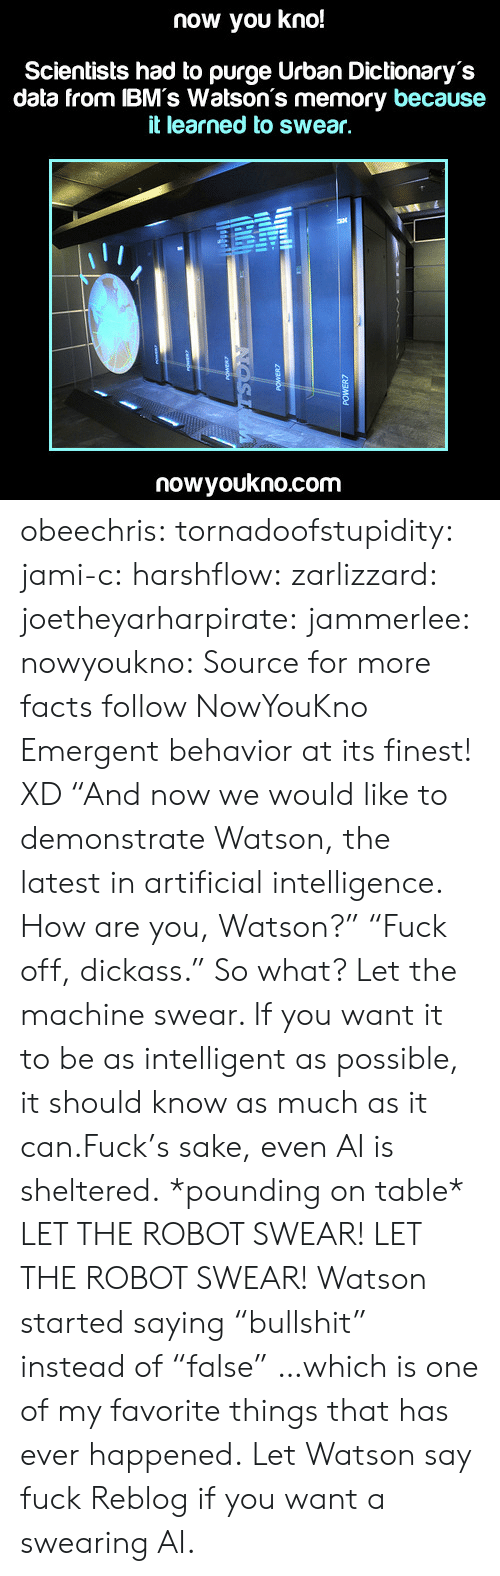 """Emergent: now you kno!  Scientists had to purge Urban Dictionary's  data from IBM's Watson's memory because  it learned to swear,  nowyoukno.com obeechris:  tornadoofstupidity:  jami-c:  harshflow:  zarlizzard:  joetheyarharpirate:  jammerlee:  nowyoukno:  Source for more facts follow NowYouKno  Emergent behavior at its finest! XD  """"And now we would like to demonstrate Watson, the latest in artificial intelligence. How are you, Watson?"""" """"Fuck off, dickass.""""  So what? Let the machine swear. If you want it to be as intelligent as possible, it should know as much as it can.Fuck's sake, even AI is sheltered.  *pounding on table* LET THE ROBOT SWEAR! LET THE ROBOT SWEAR!  Watson started saying""""bullshit"""" instead of""""false"""" …which is one of my favorite things that has ever happened.   Let Watson say fuck  Reblog if you want a swearing AI."""